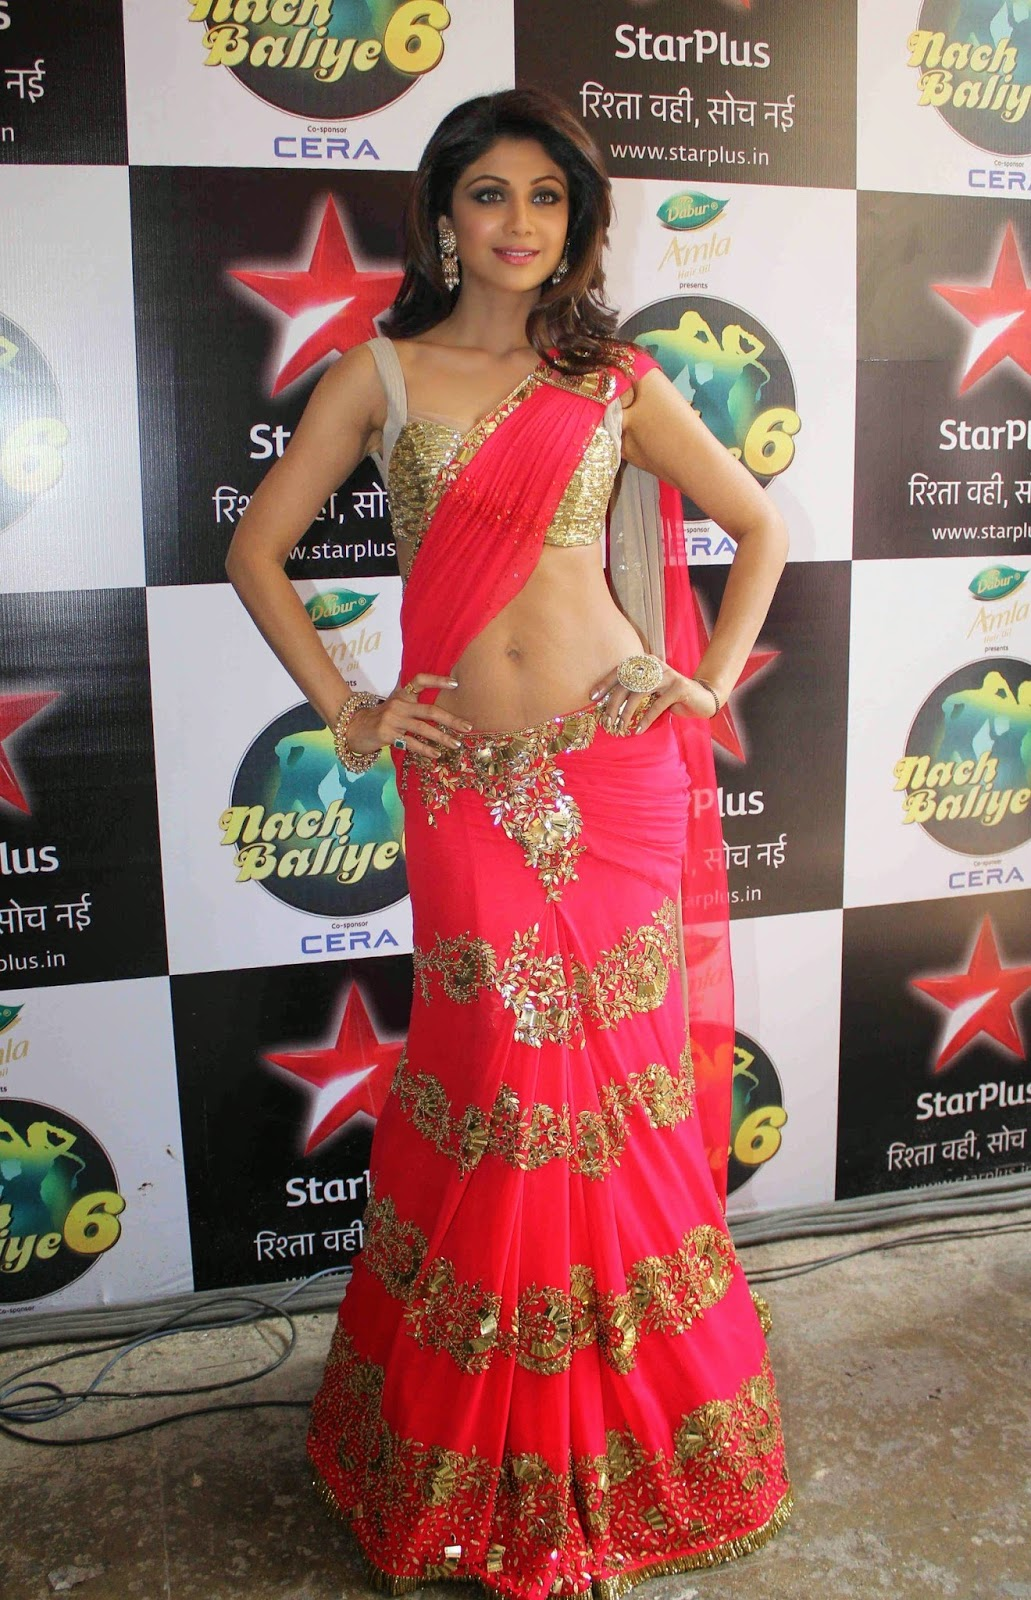 High Quality Bollywood Celebrity Pictures Shilpa Shetty -7457